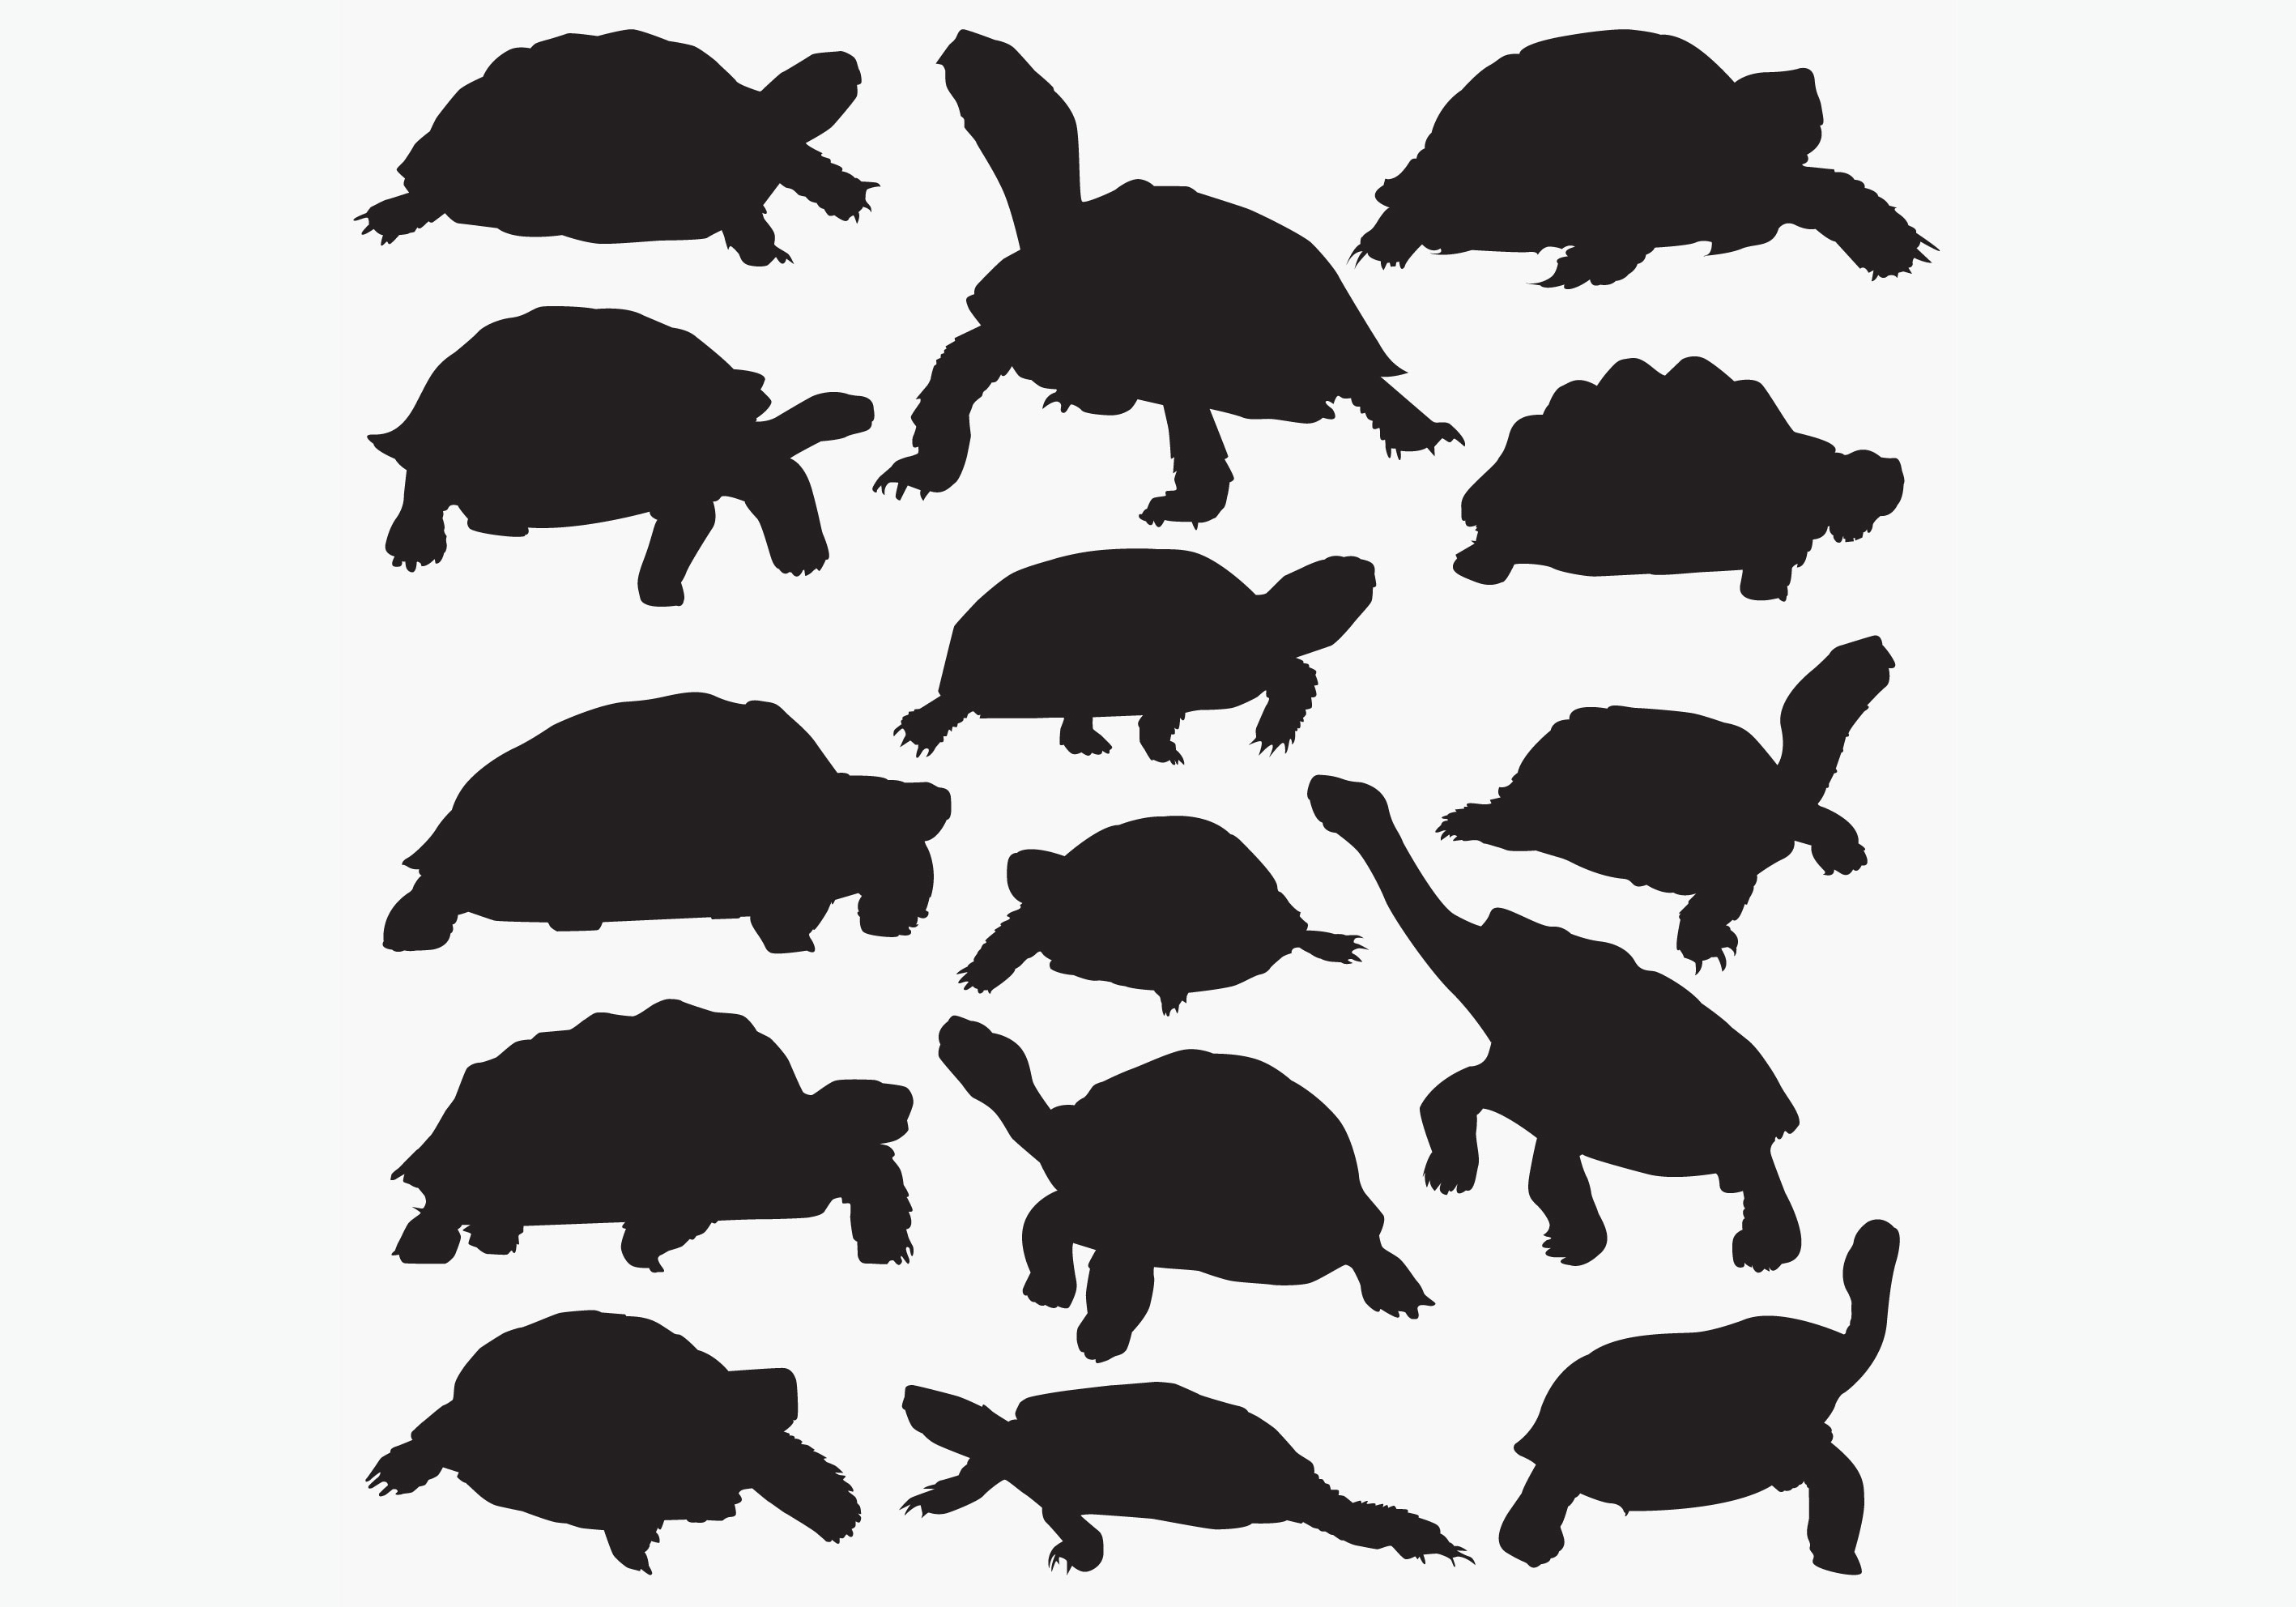 Download Free Tortoise Silhouettes Graphic By Octopusgraphic Creative Fabrica for Cricut Explore, Silhouette and other cutting machines.